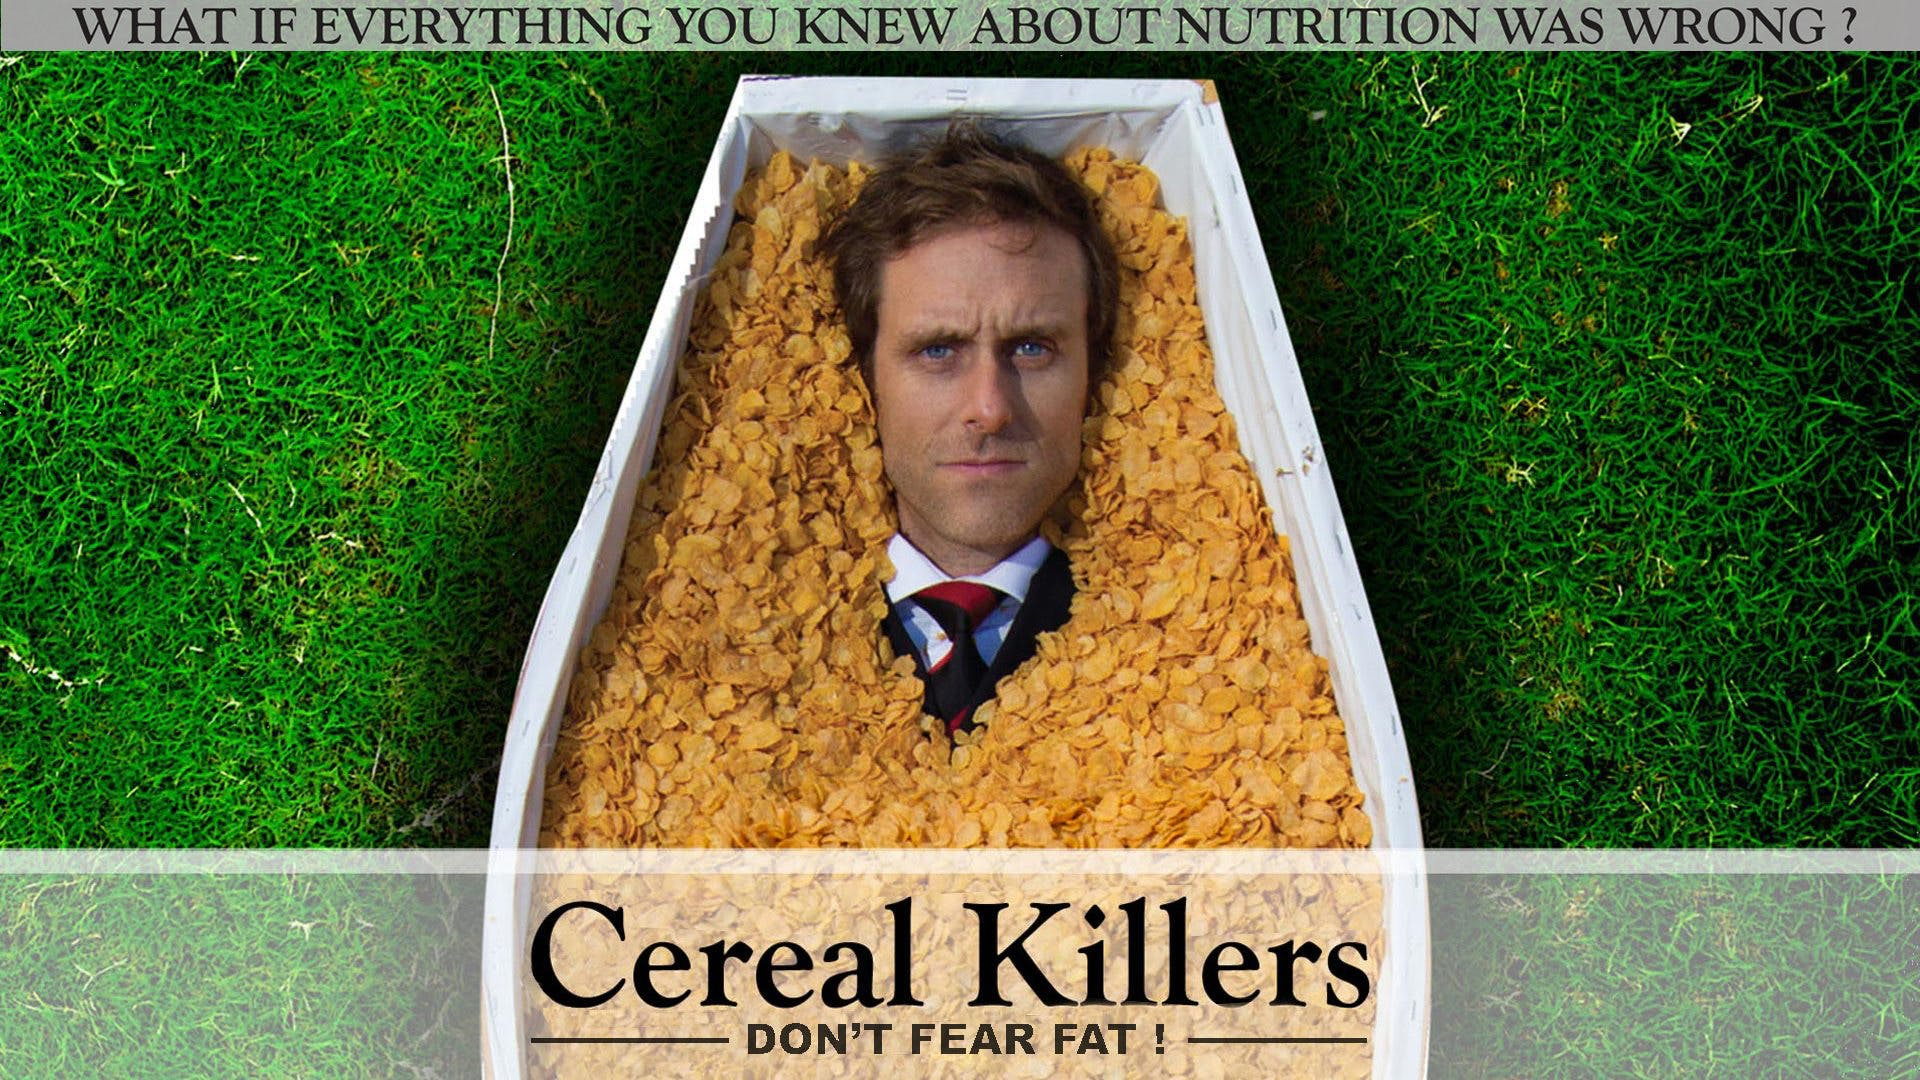 Watch the low-carb movie Cereal Killers